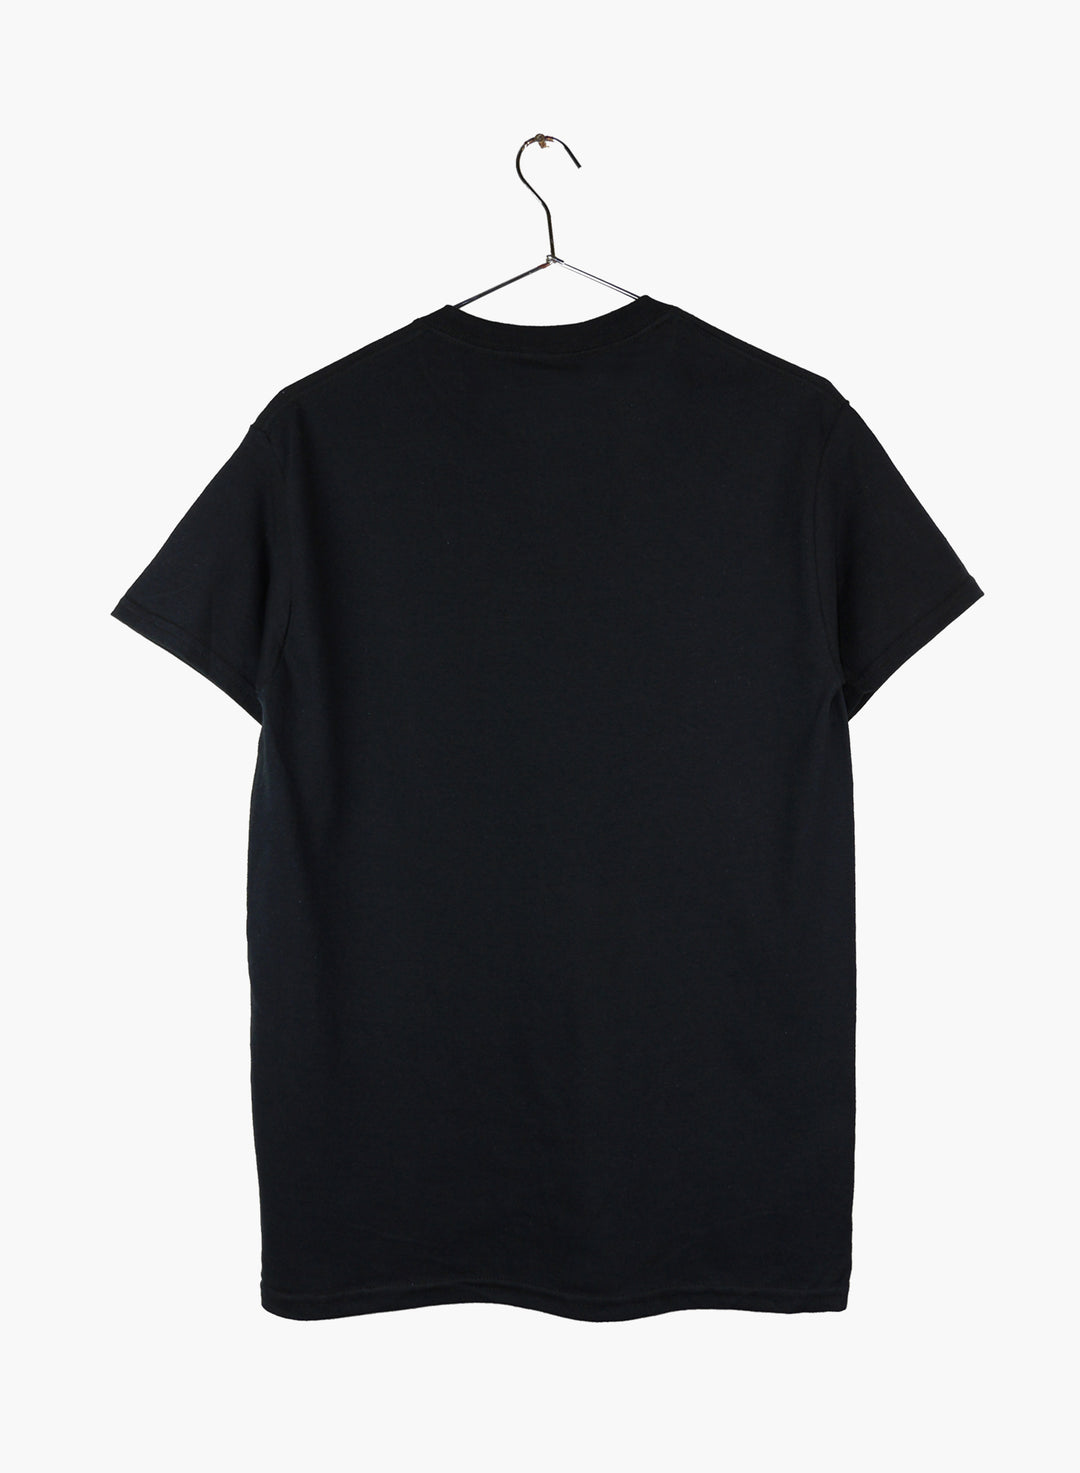 Surfin Estate black t-shirt with coordinates logo.